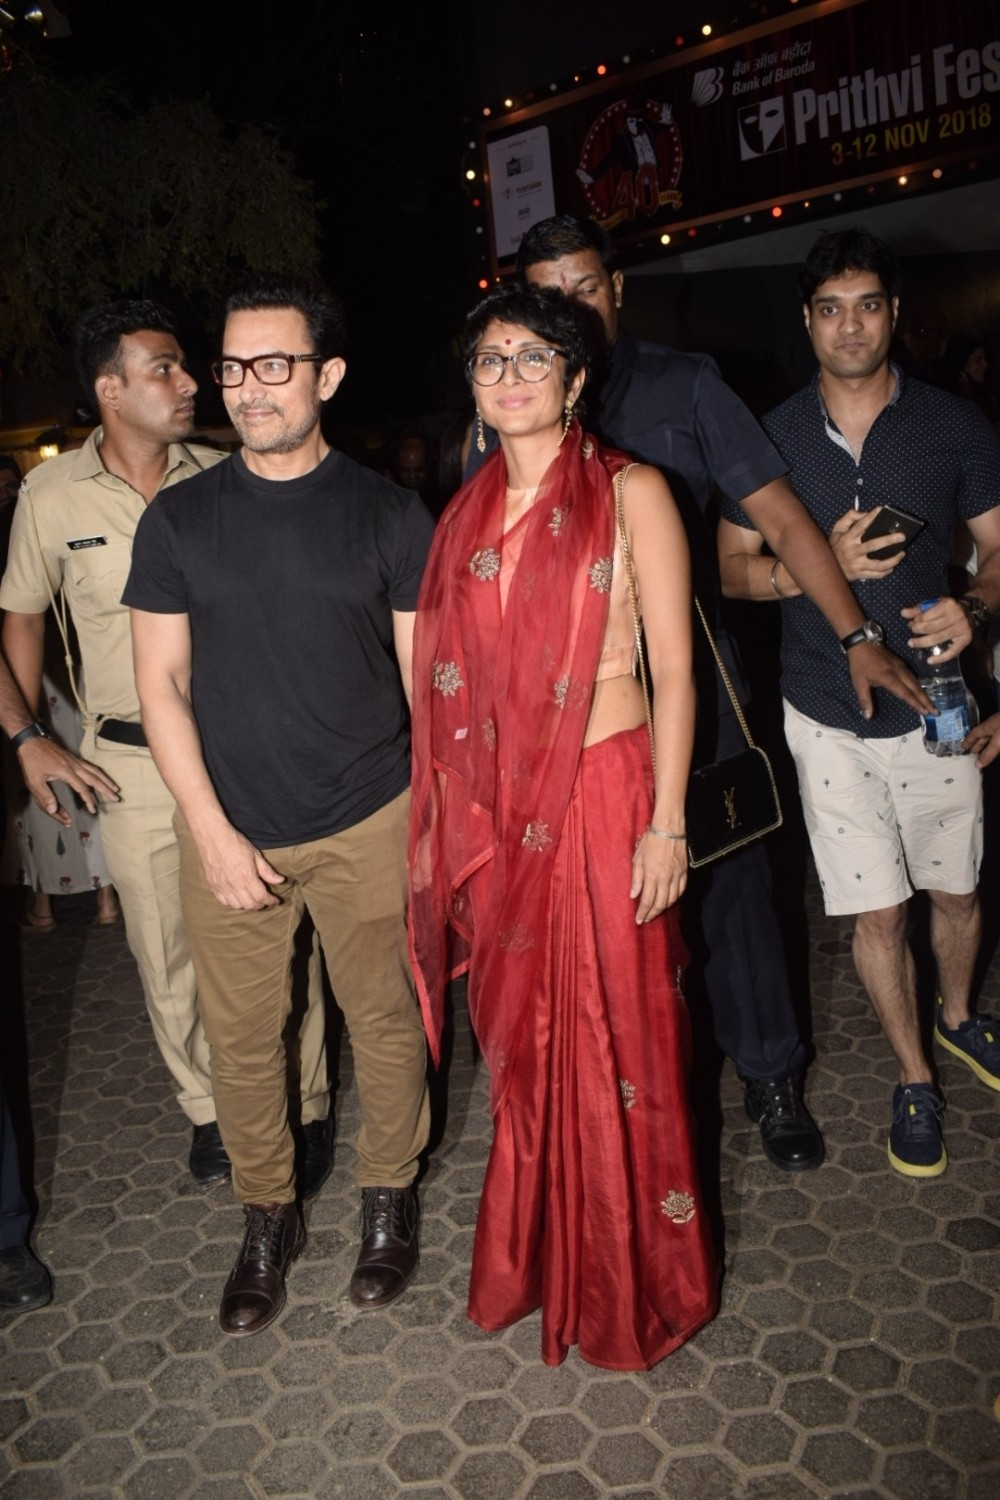 Thugs of Hindostan,Thugs of Hindostan actor,Aamir Khan and Kiran Rao,Aamir Khan,Kiran Rao,Aamir Khan and Kiran Rao at Prithvi theatre,40th Prithvi theatre festival,Prithvi theatre festival,Prithvi festival